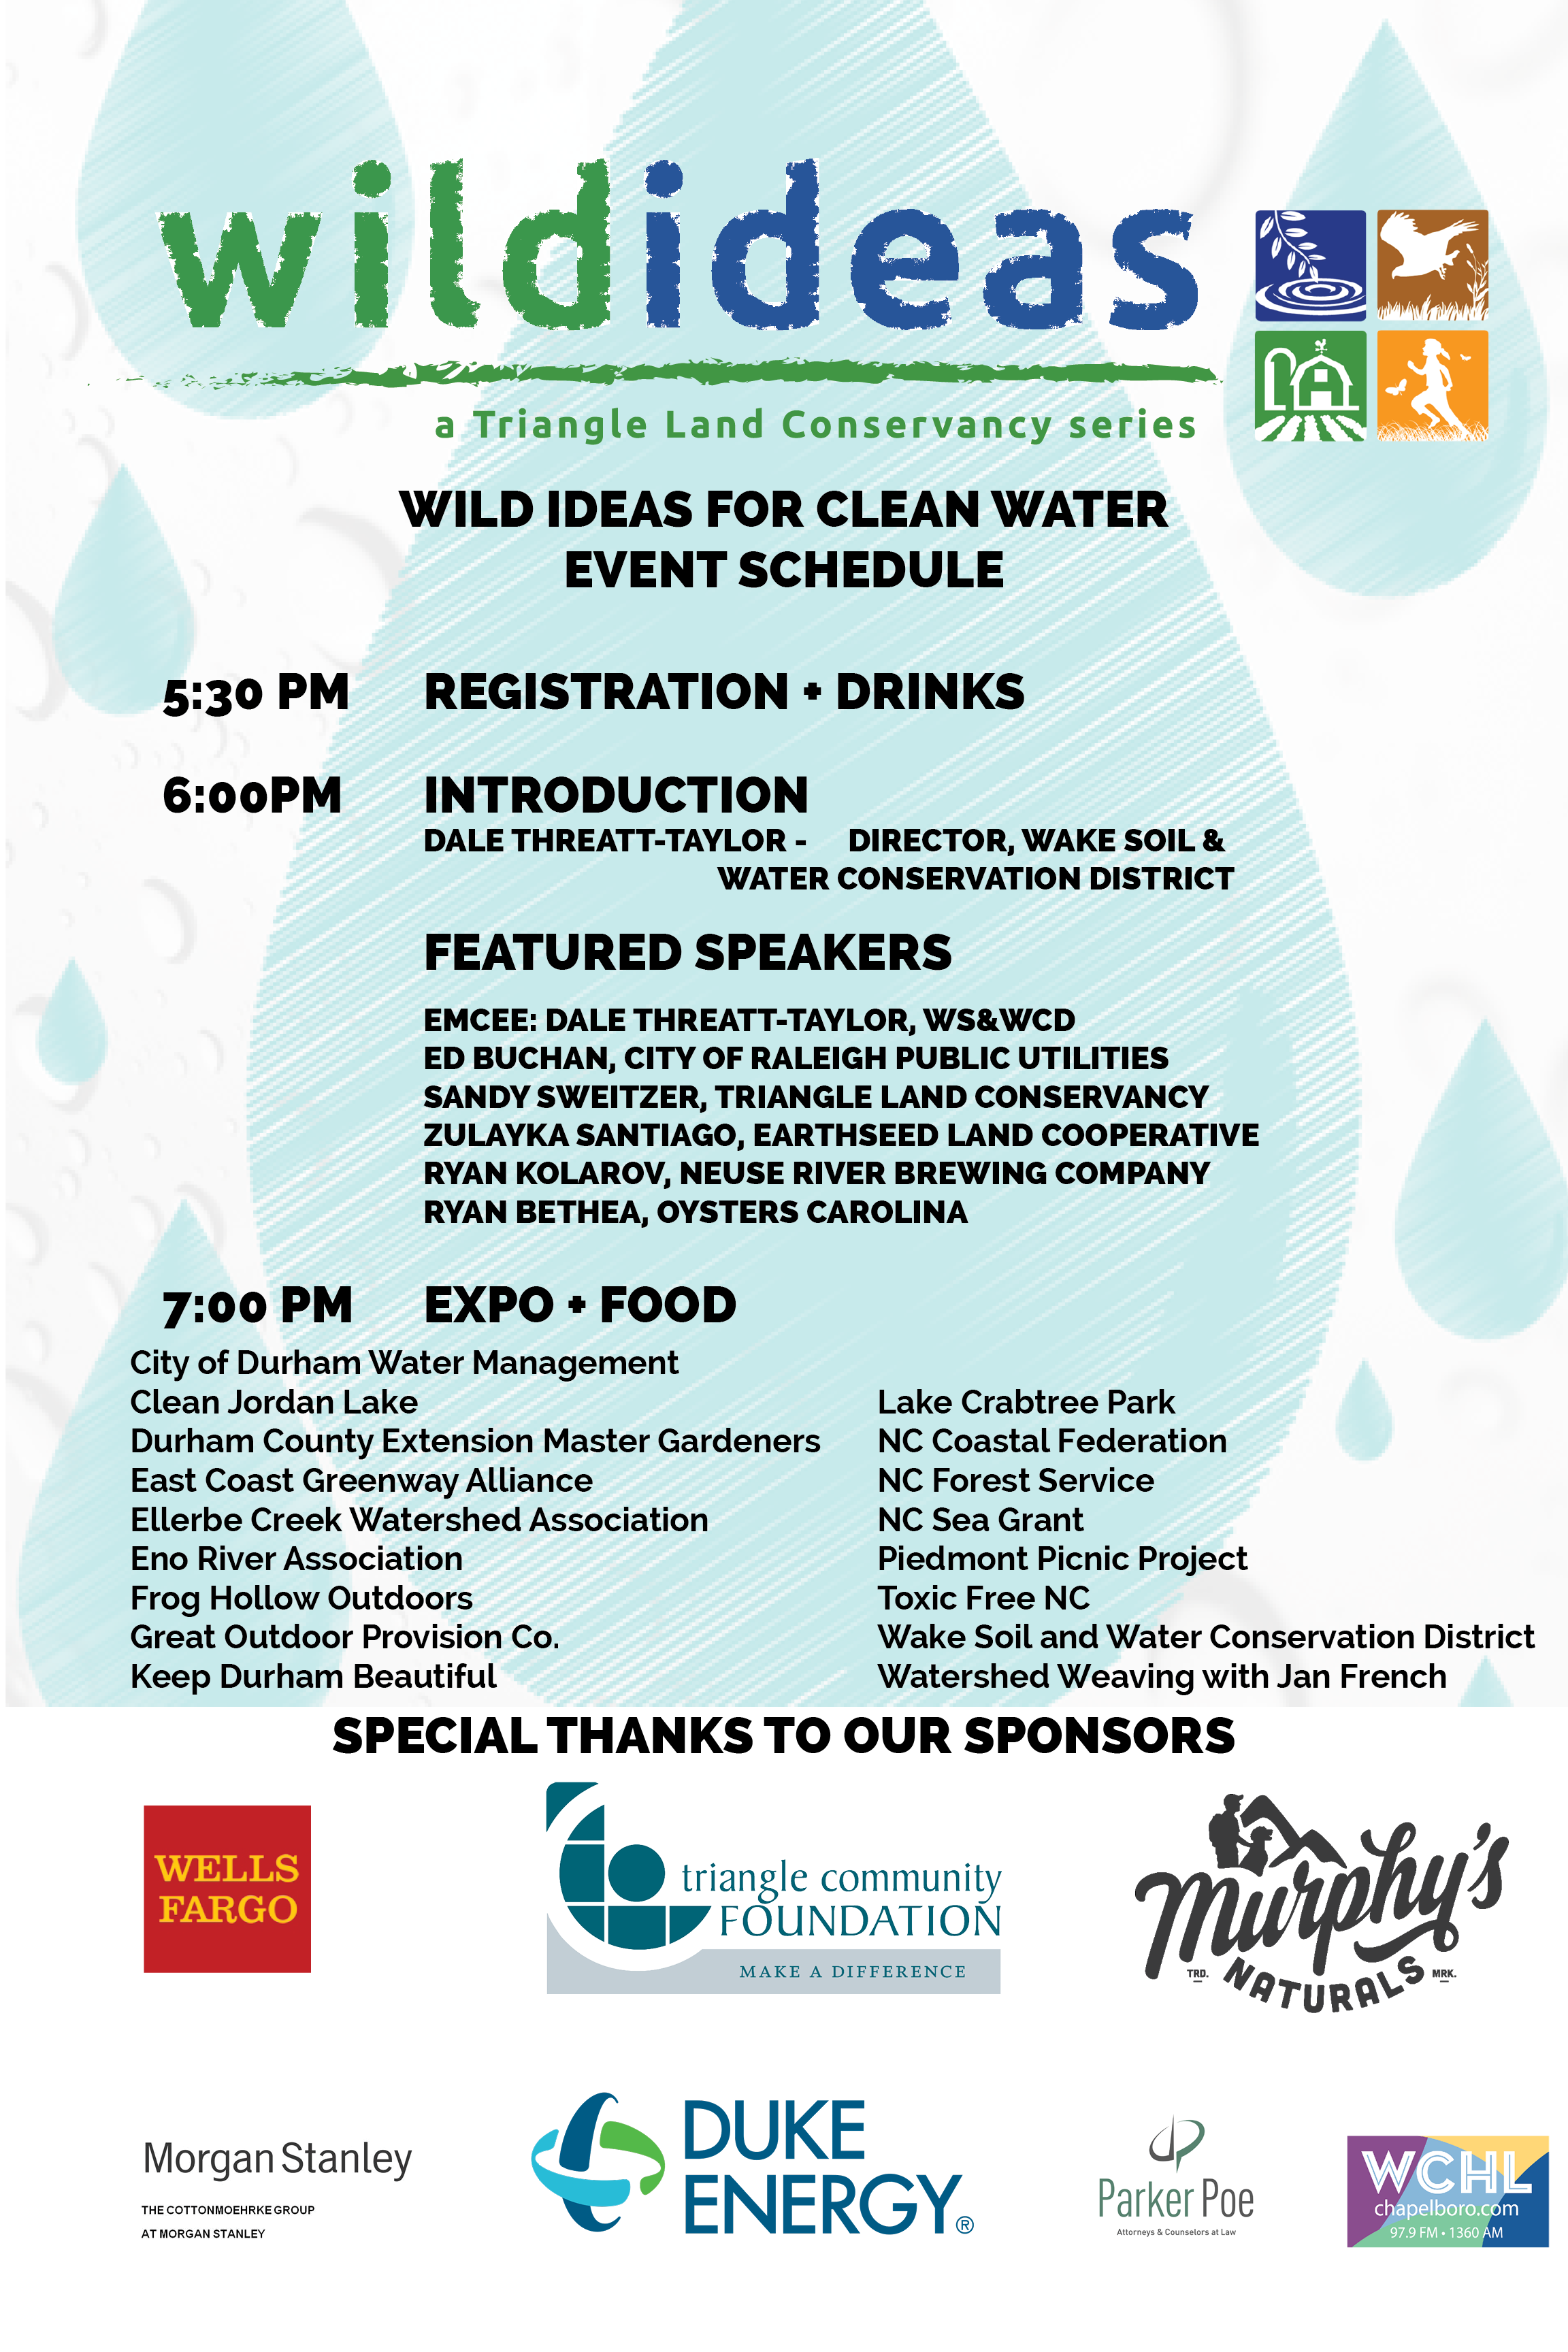 Triangle Land Conservancy Will Host Another Installment Of Its Wild Ideas Series For Clean Water Be On June 27 2017 At The Frontier